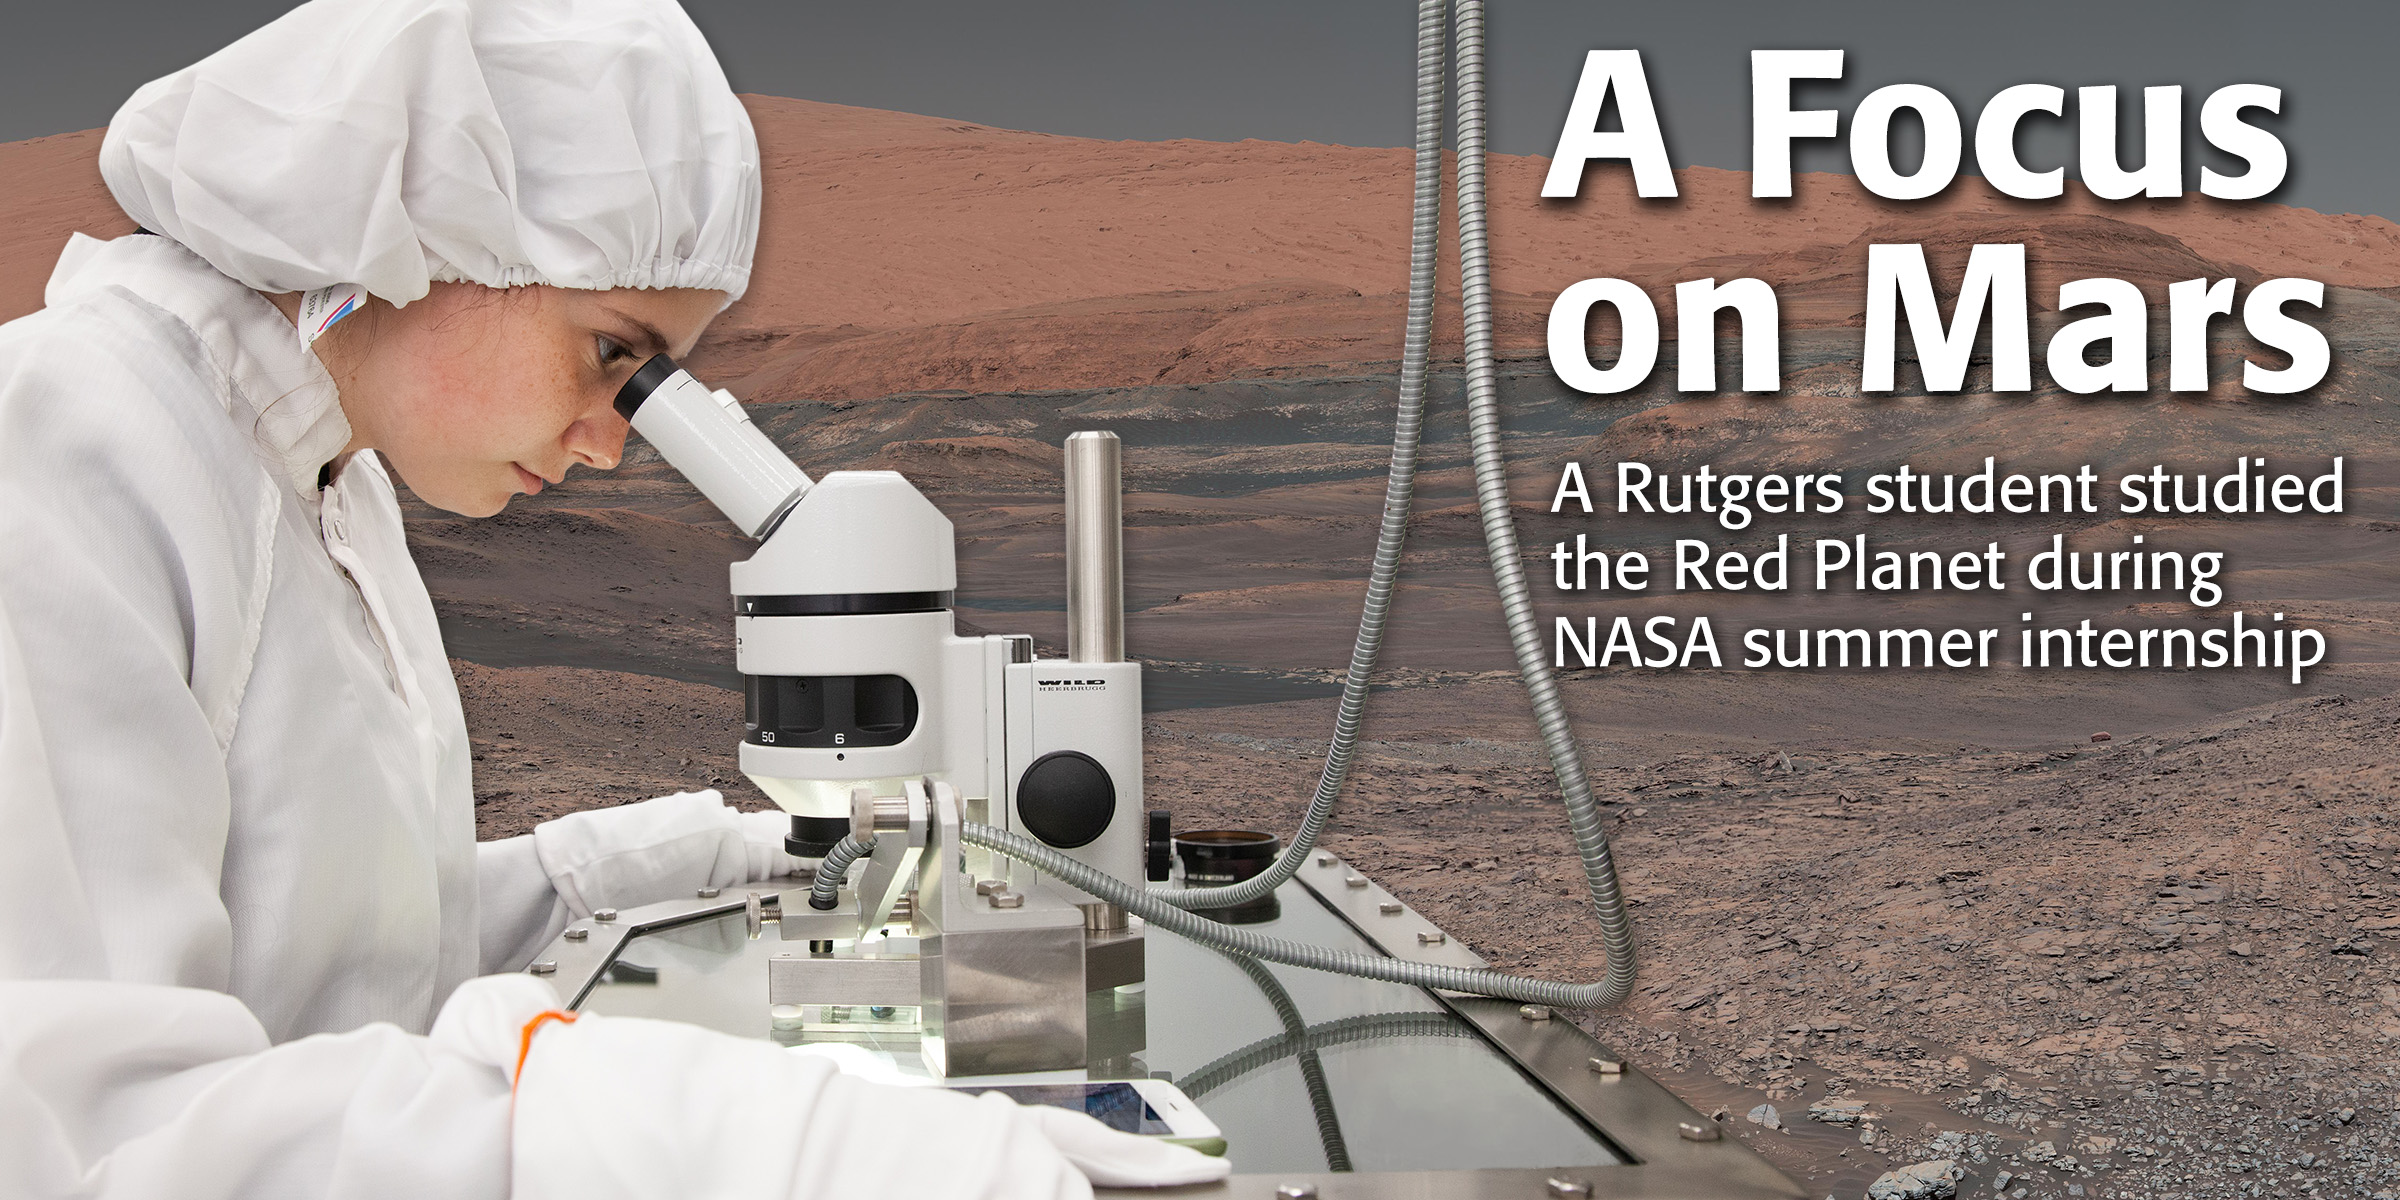 A Focus on Mars: A Rutgers Student studied the Red Planet during NASA summer internship